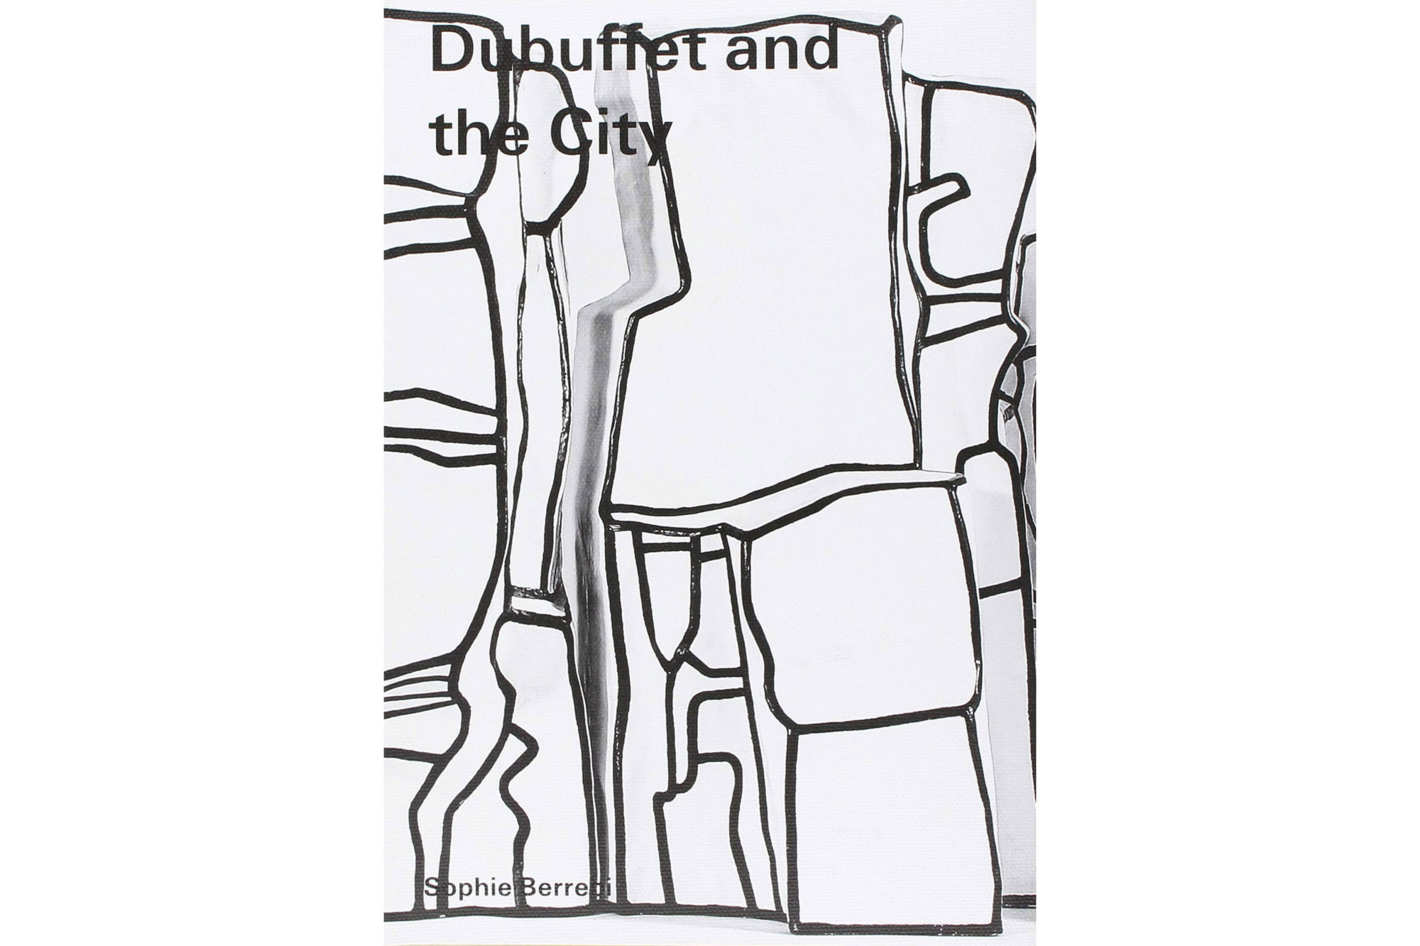 <em>Dubuffet and the City: People, Place, and Urban Space</em> by Sophie Berrebi